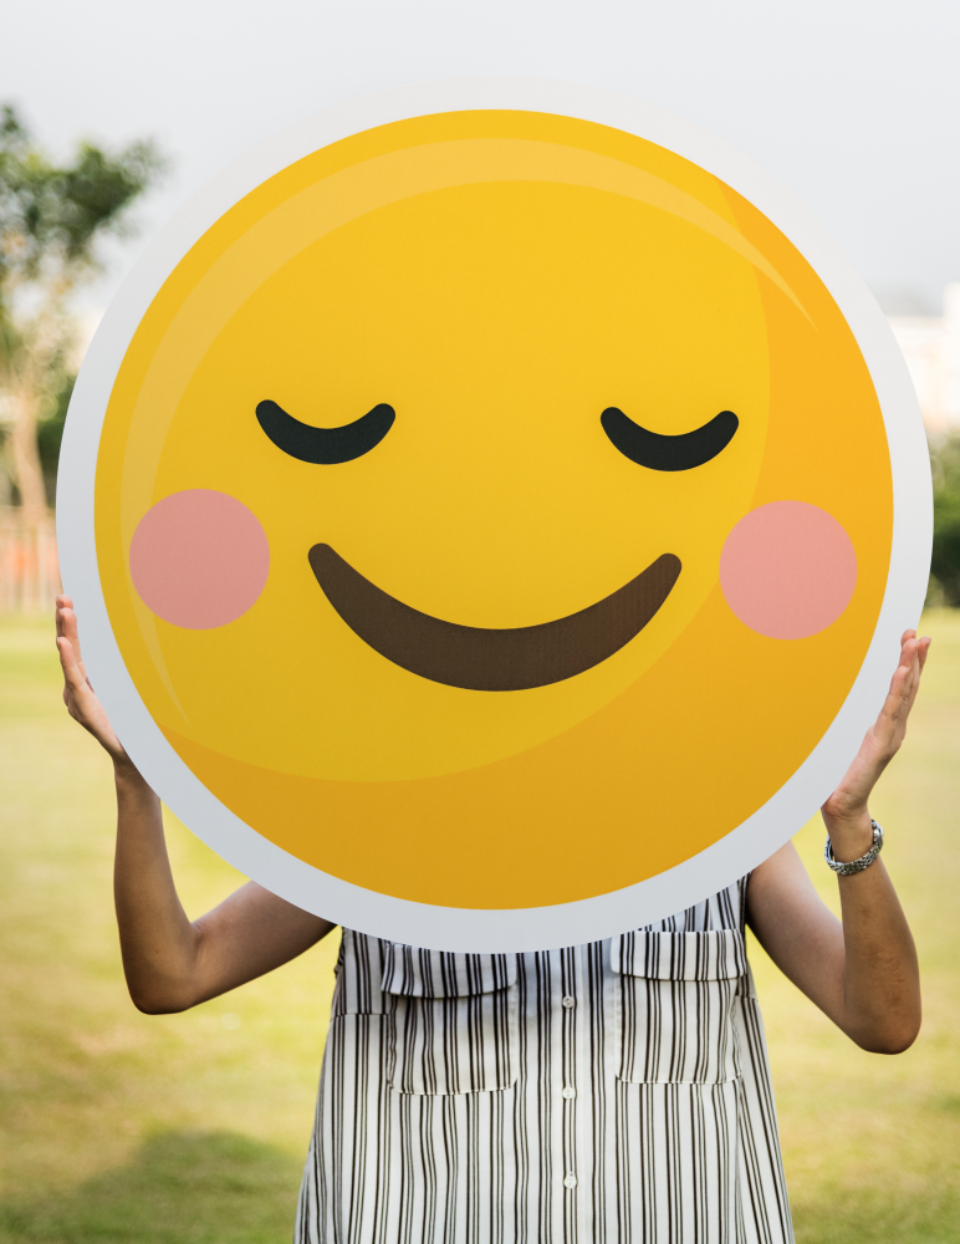 carrying cartoon emoji emoticon expression face field fun happiness happy happy face holding icon joy joyful korean malaysian outdoors paper park smile smiley smiley face smiling f